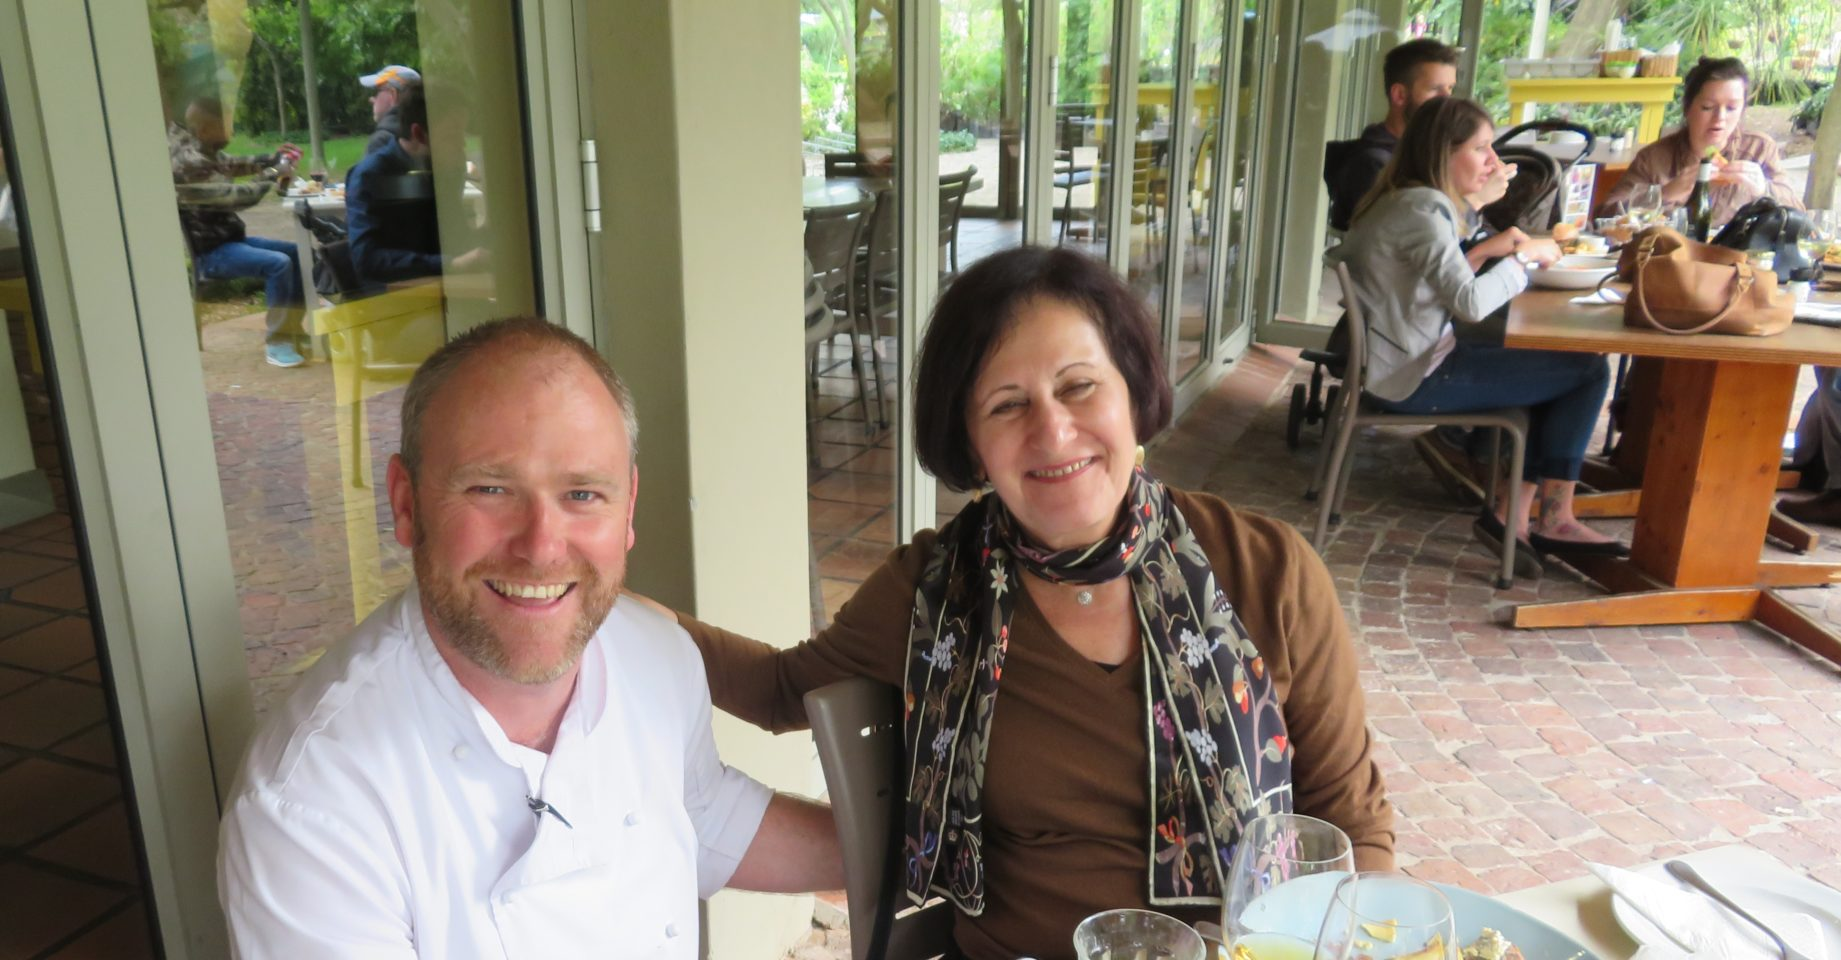 Lynn and talented Head Chef Garth Bedford at Joostenberg Bistro in Stellenbosch, South Africa